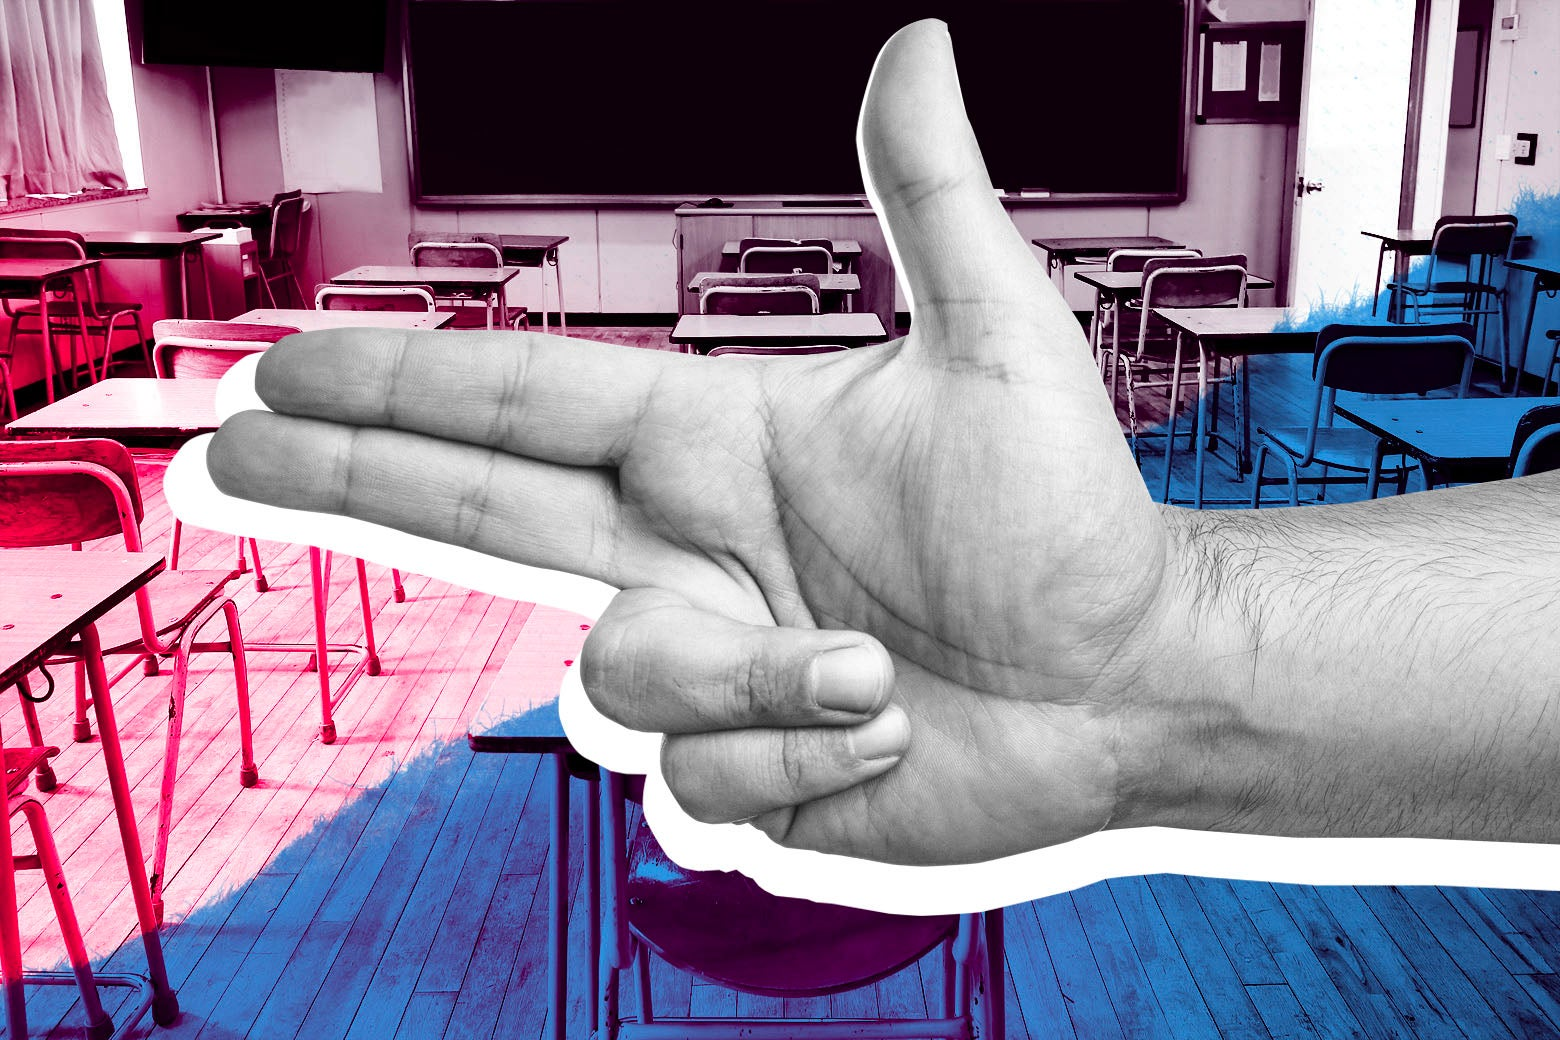 Photo illustration: A hand gesturing like a gun is superimposed on a stock image of a classroom.